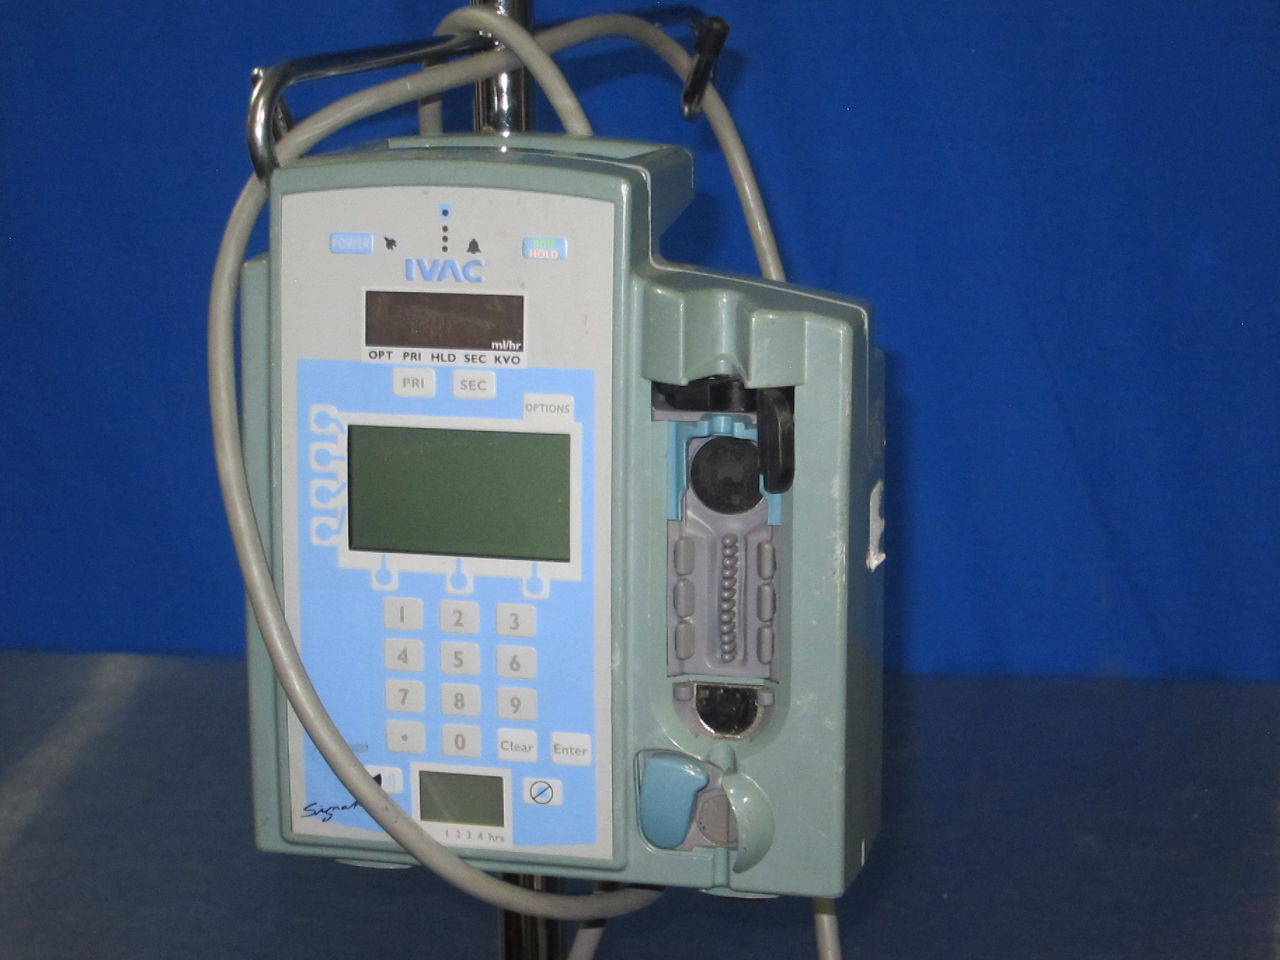 IVAC 7100 Signature Edition On Stand Pump IV Infusion